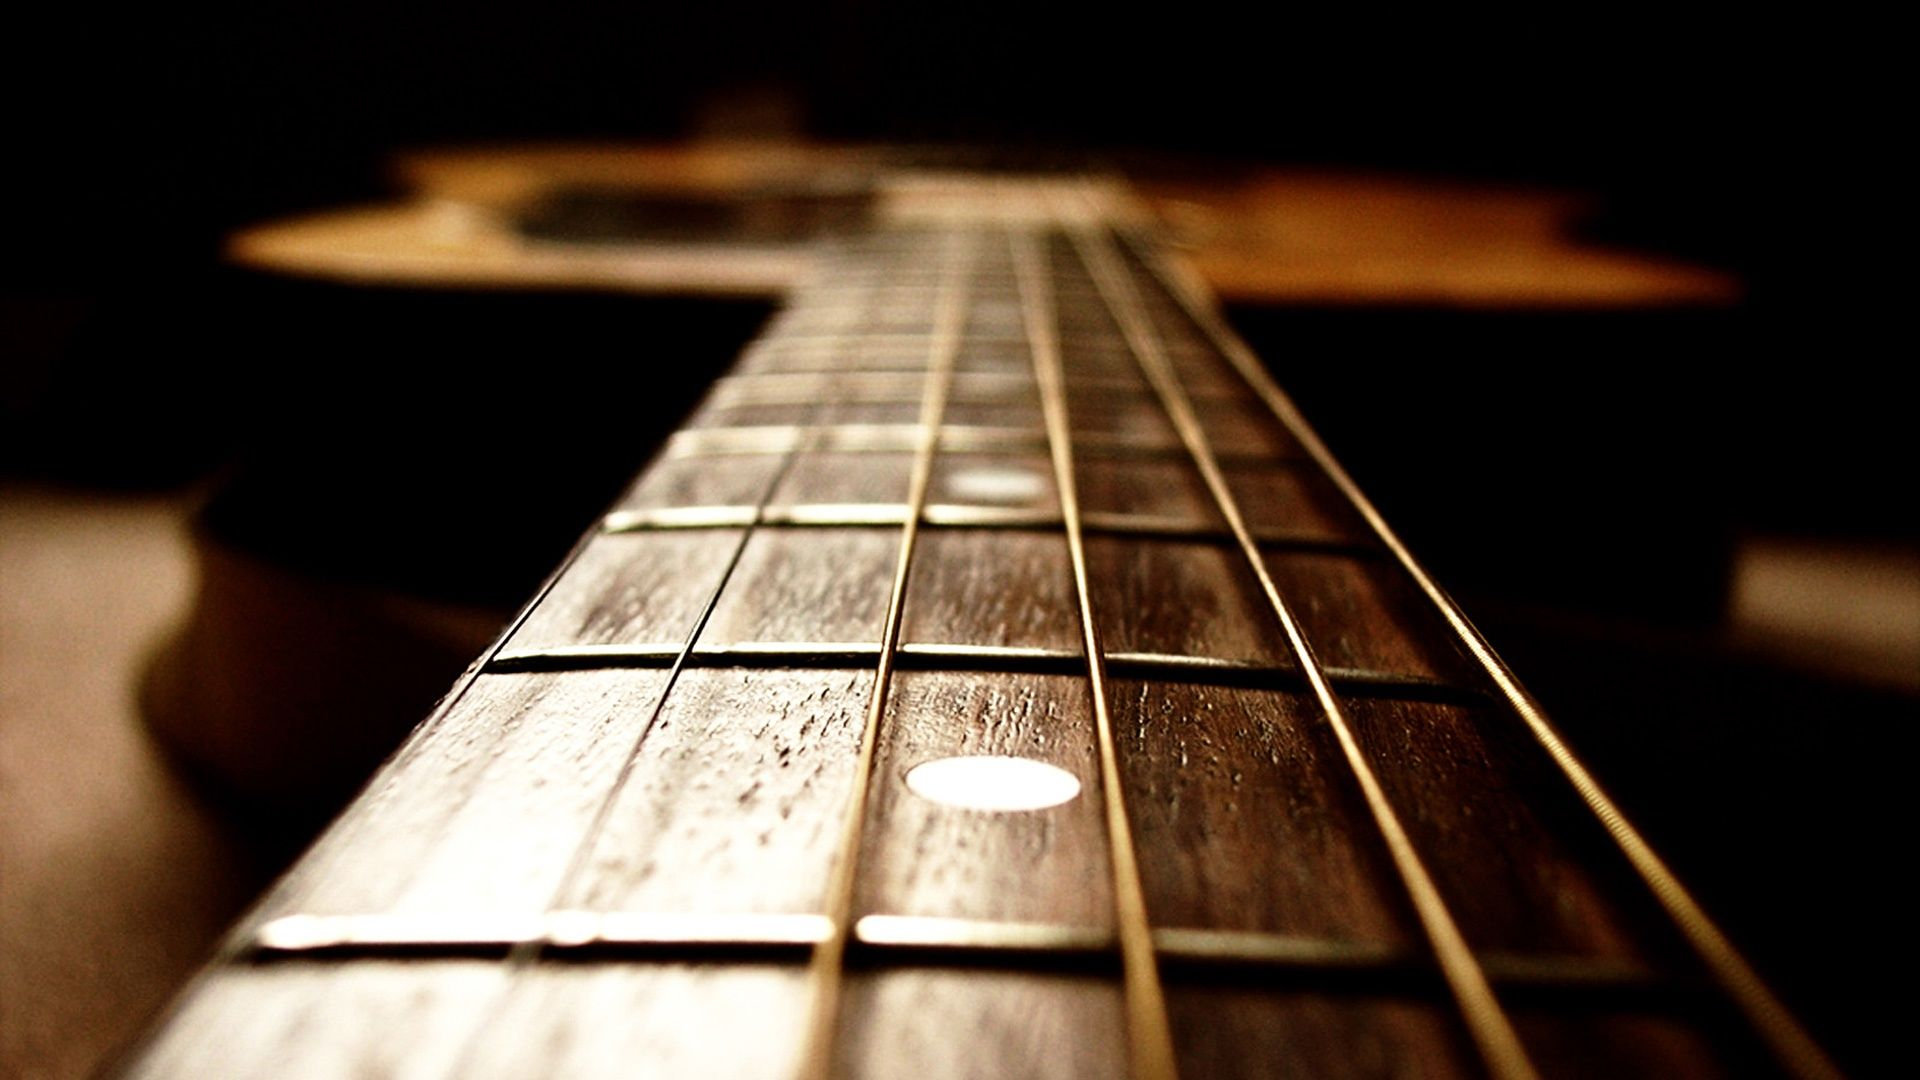 Guitars Wallpapers  Android Apps on Google Play 1920x1080